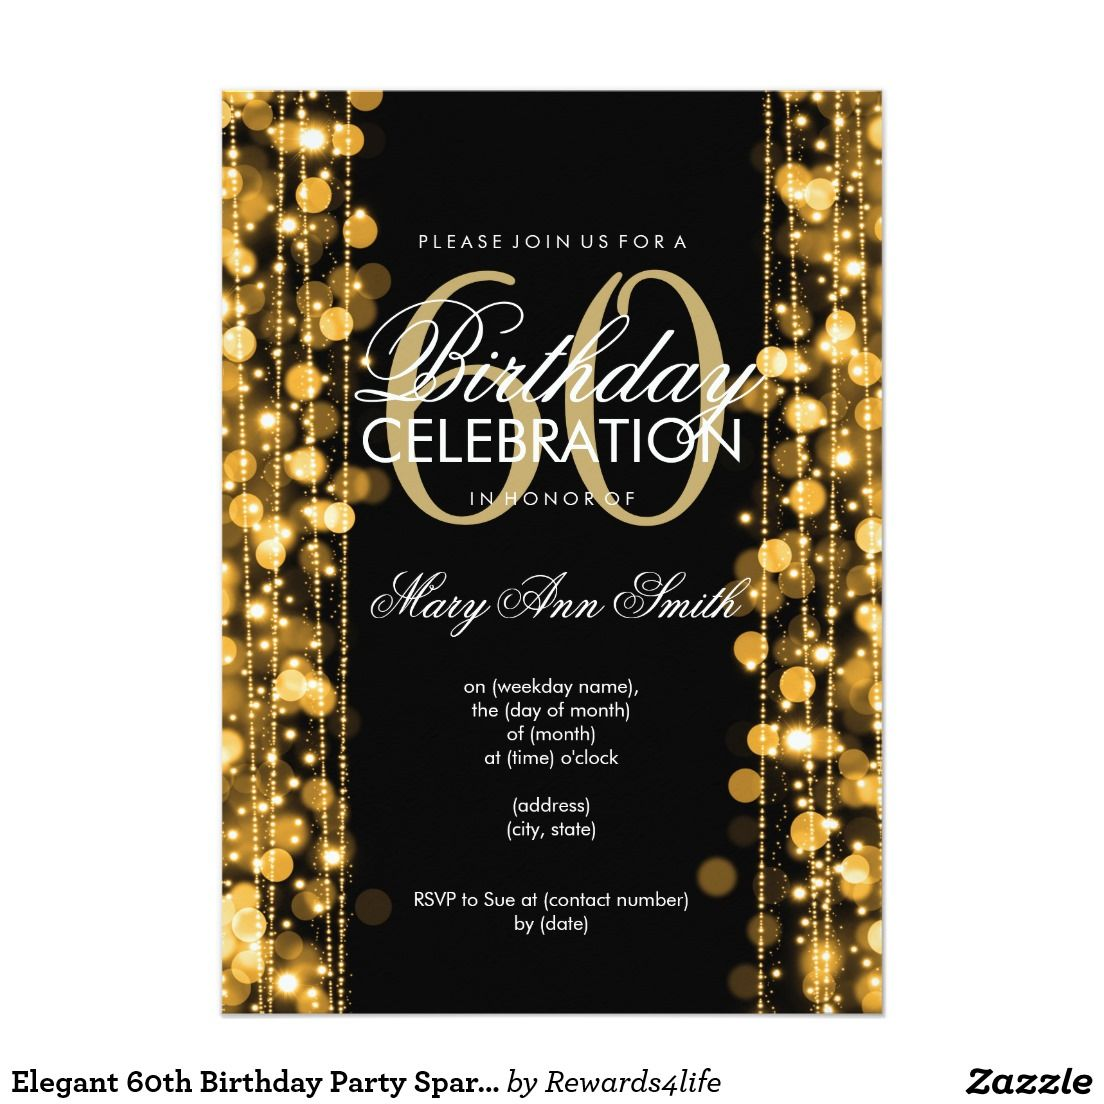 Elegant 60th Birthday Party Sparkles Gold 5x7 Paper Invitations Artwork Designed By Rewards4lifes Gifts